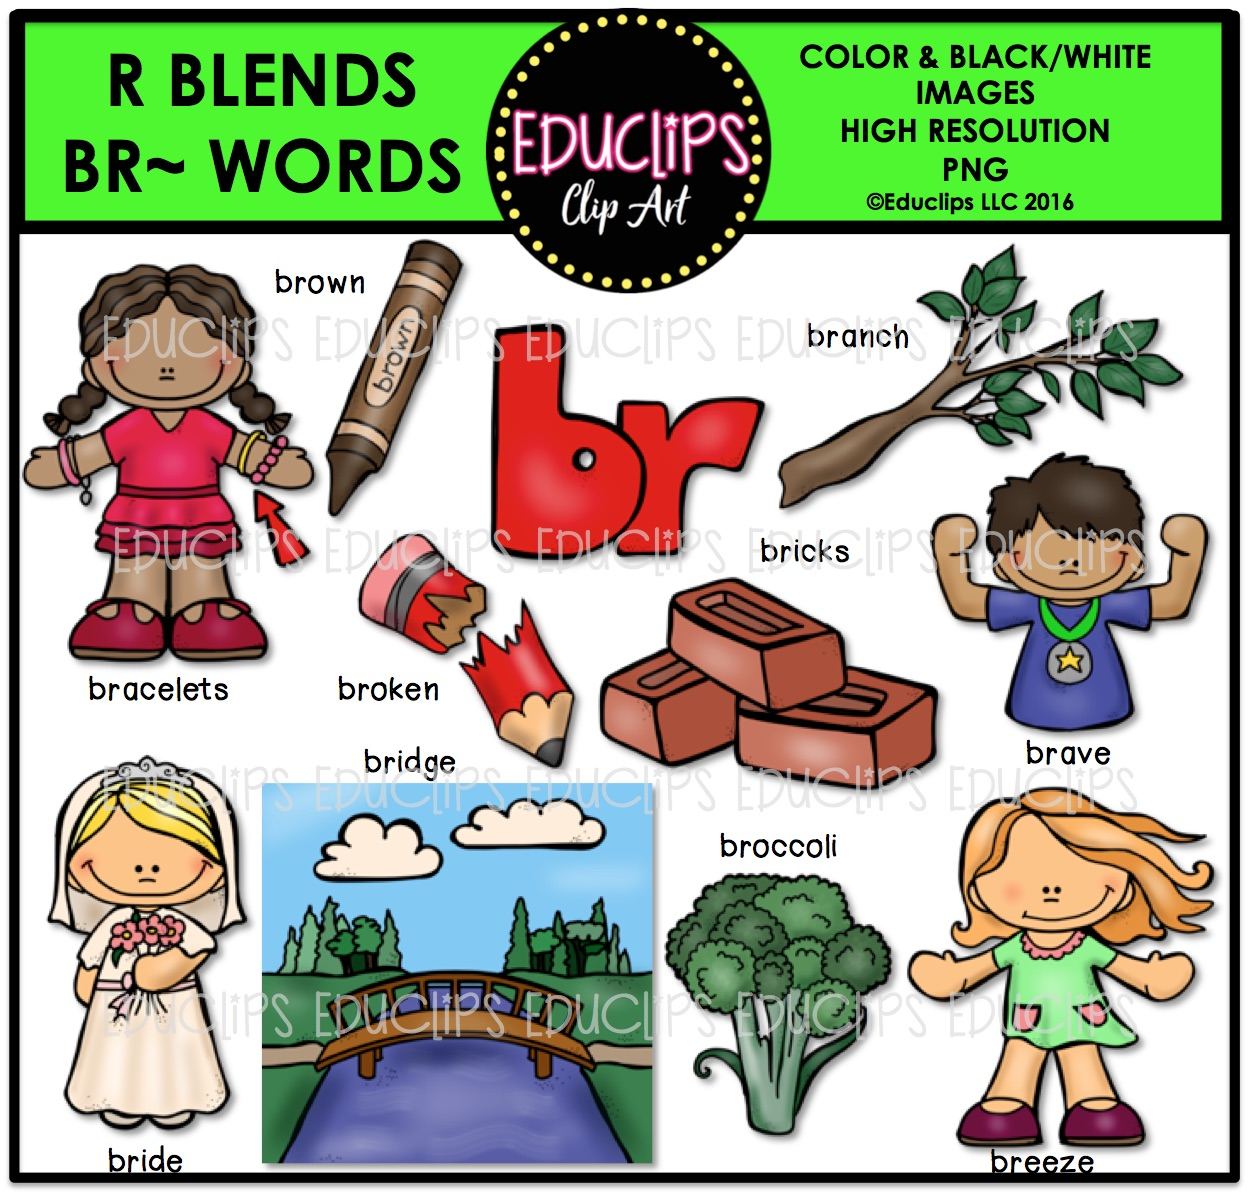 R Blends BR Words Clip Art Bundle (Color and B&W).